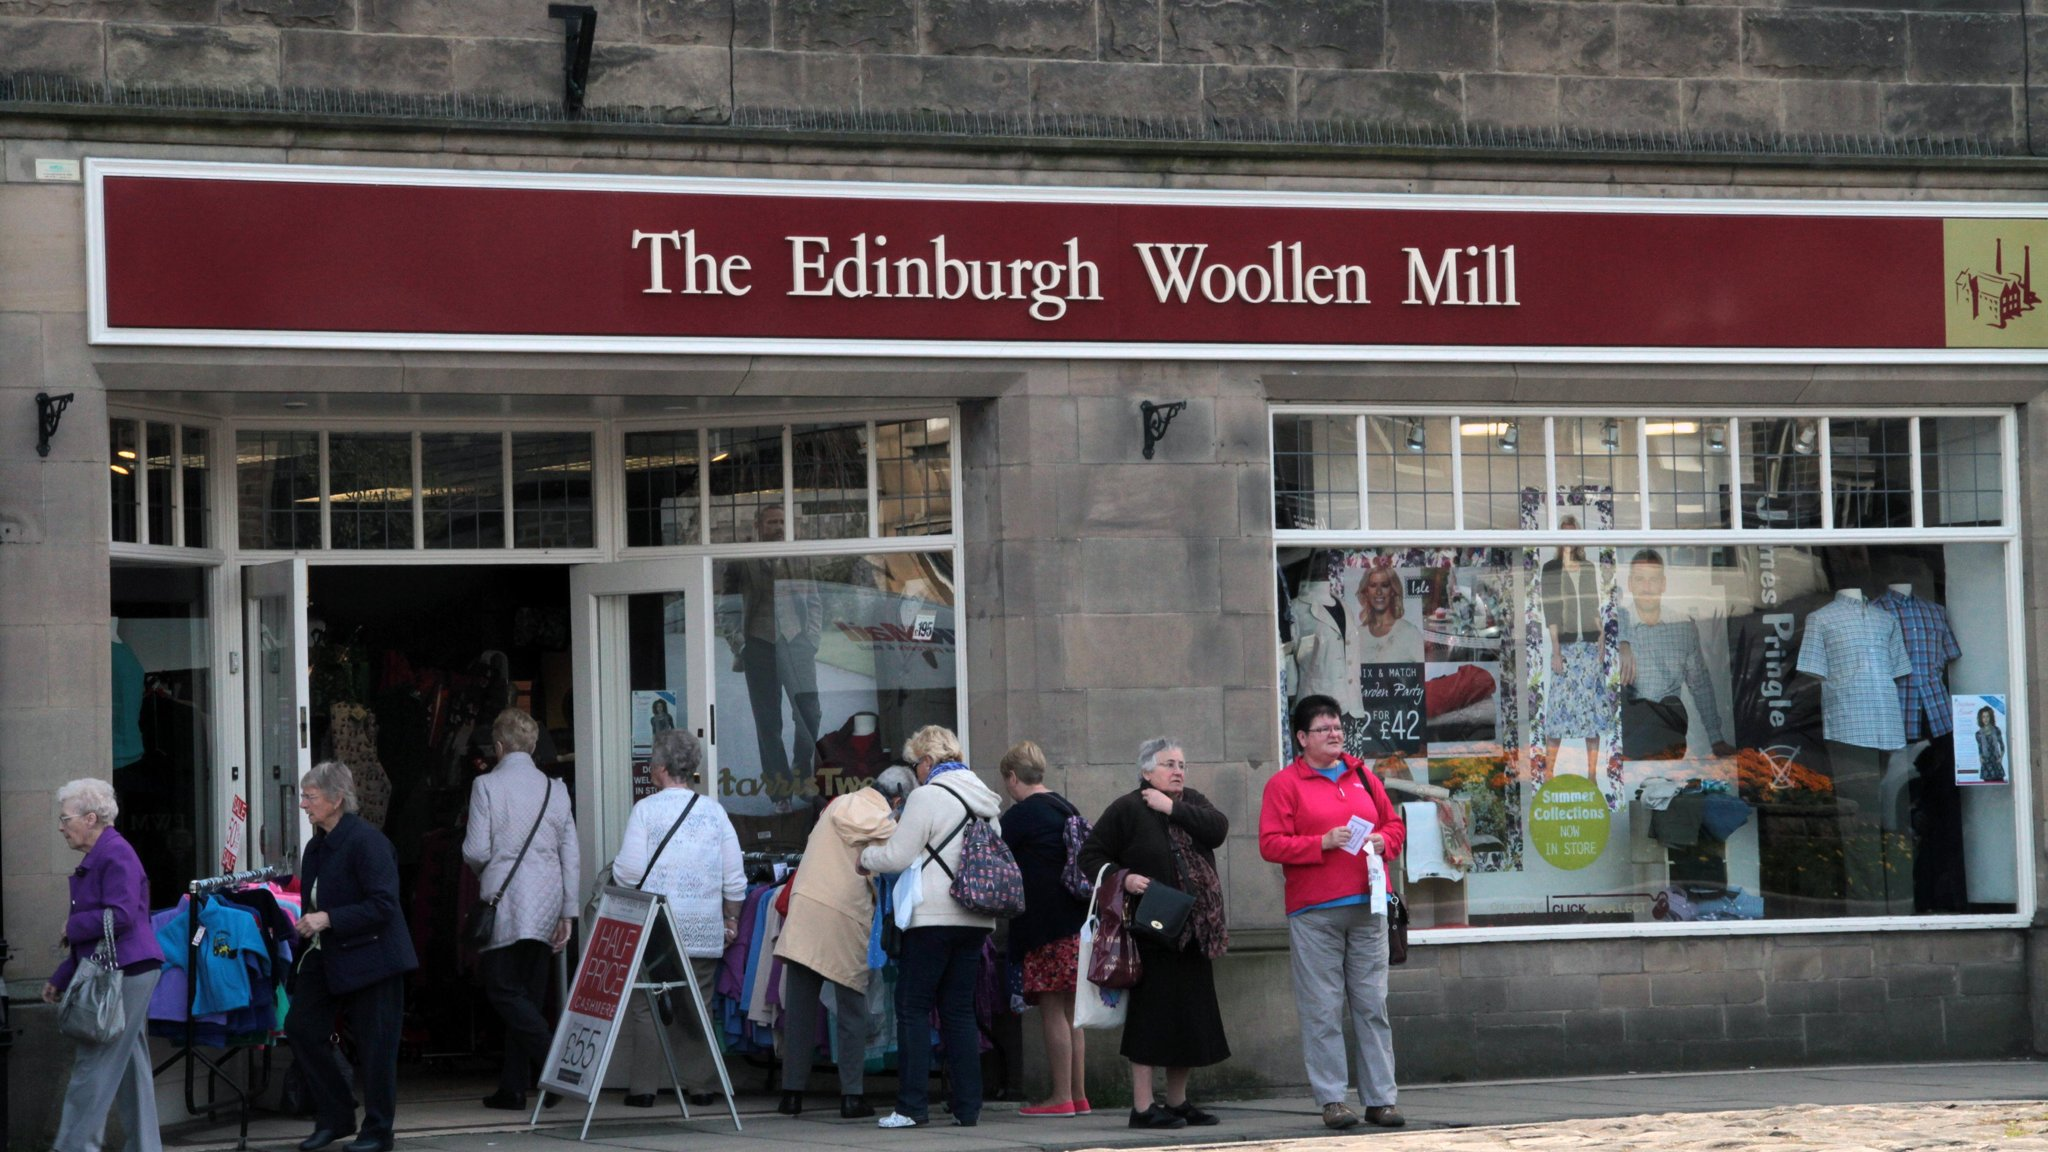 Edinburgh Woollen Mill Crops Up In Uk Bid Battles Financial Times